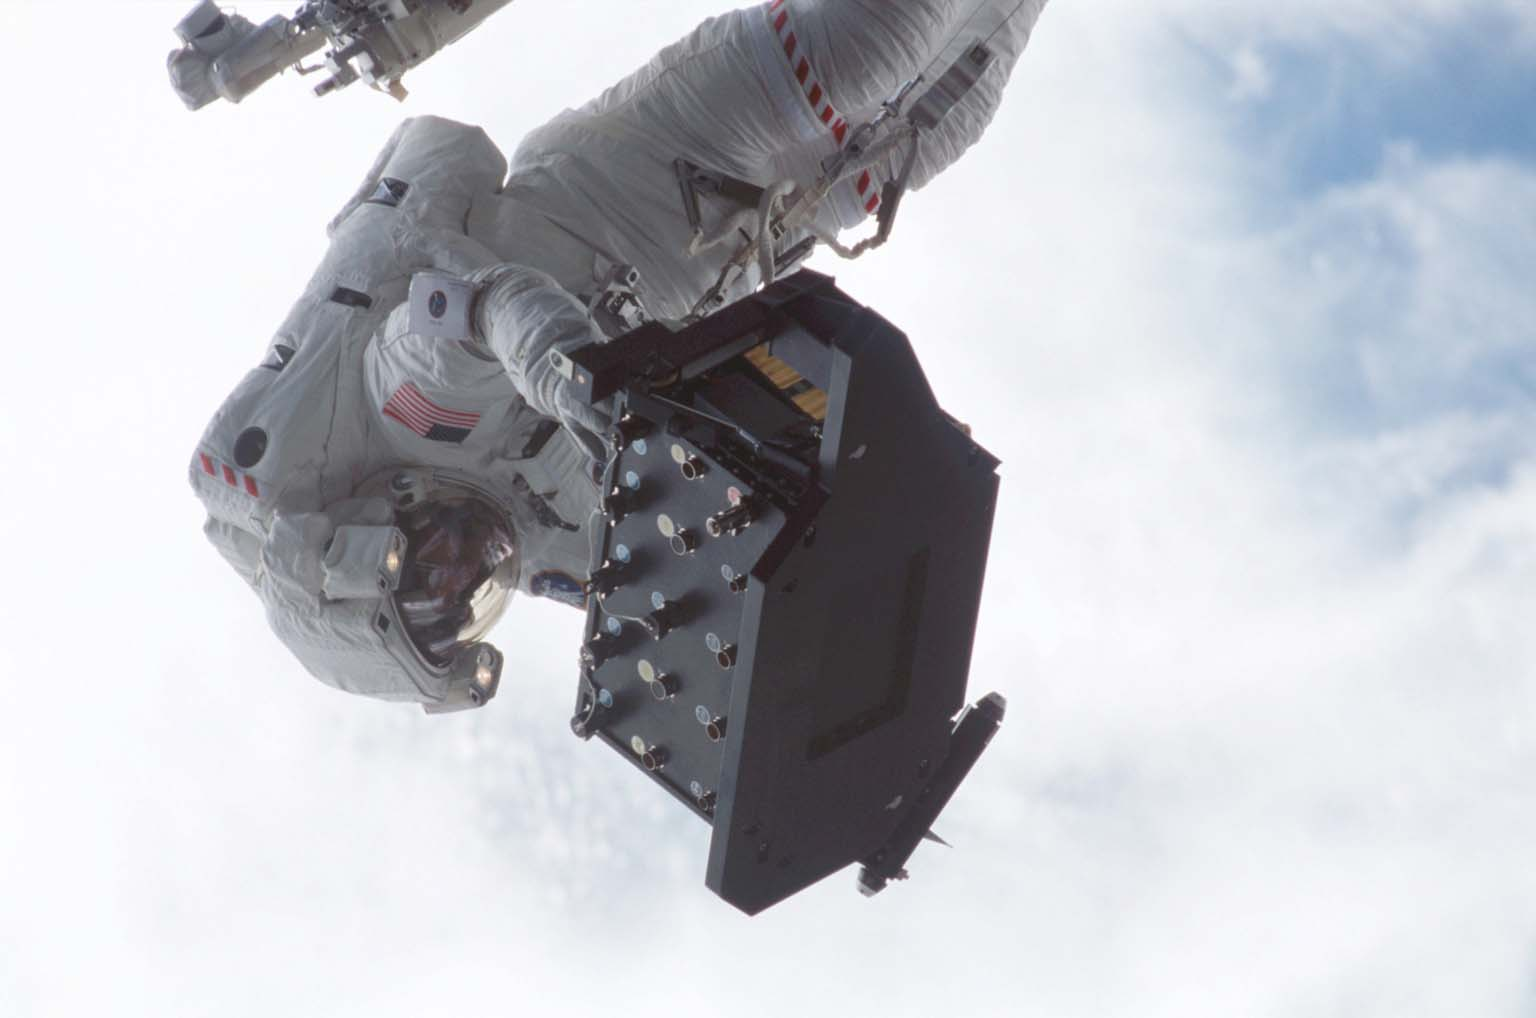 STS-109 Astronaut Michael J. Massimino Carries the Electronic Support Module (ESM)